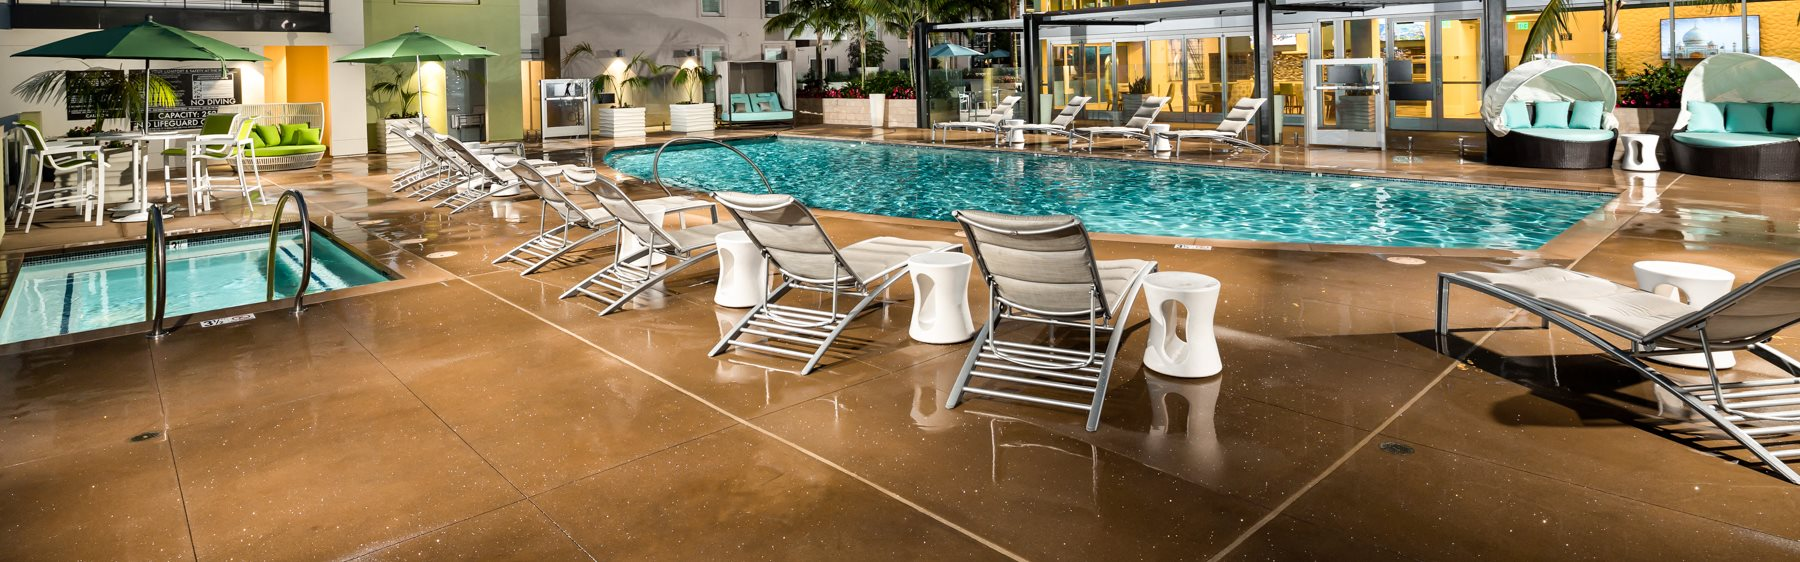 Vive on the Park Apartments Pool Area and Lounge Chairs Banner